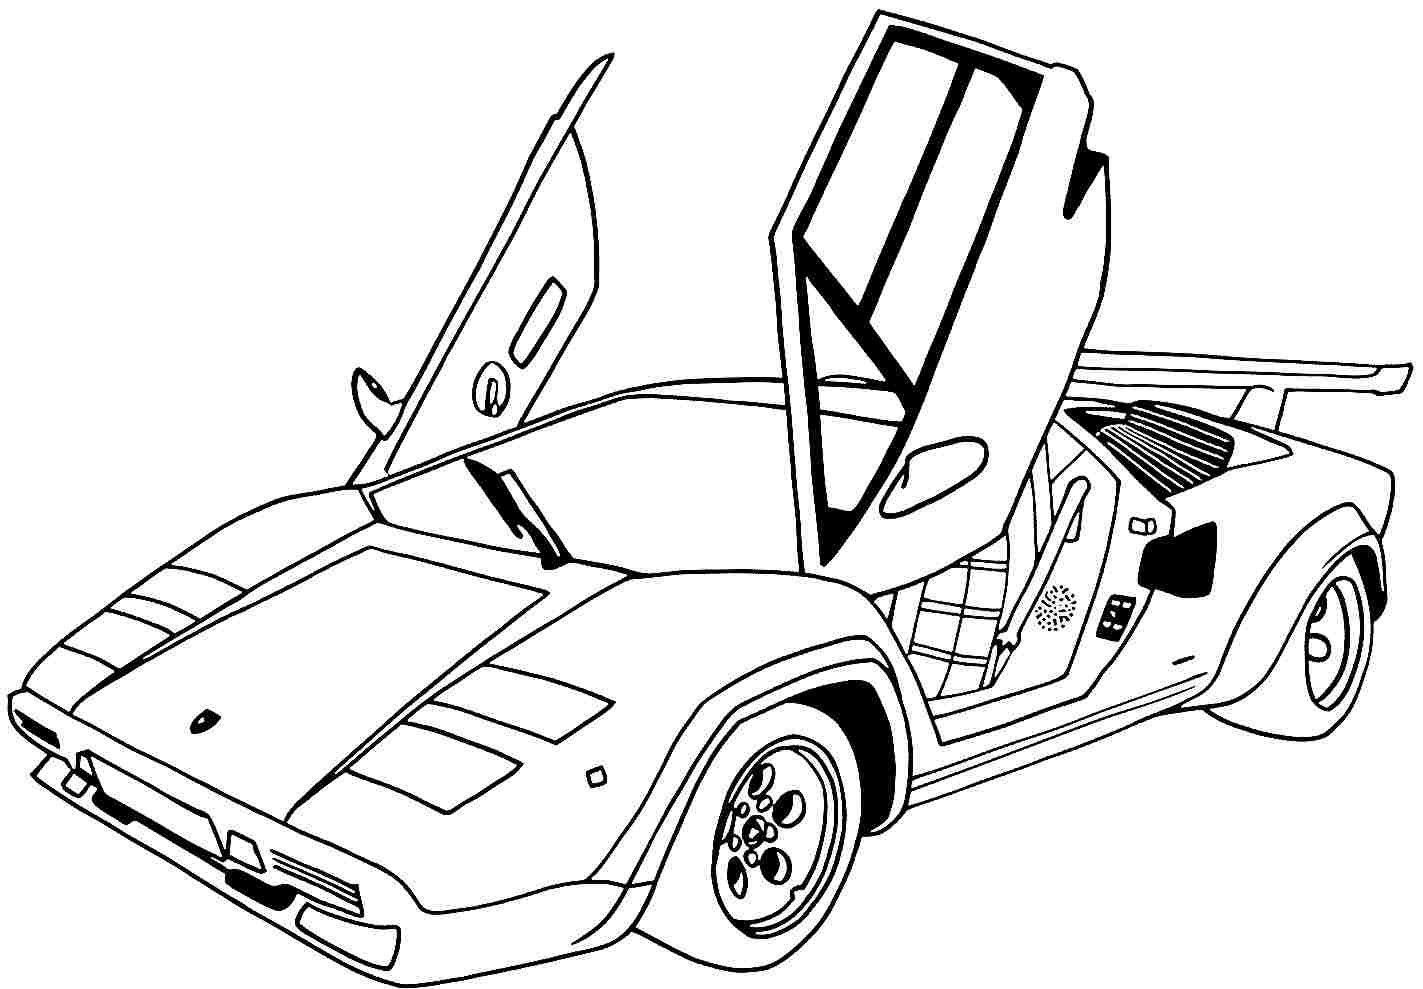 18 Racecar Coloring Pages Pdf In 2020 Race Car Coloring Pages Sports Coloring Pages Cars Coloring Pages